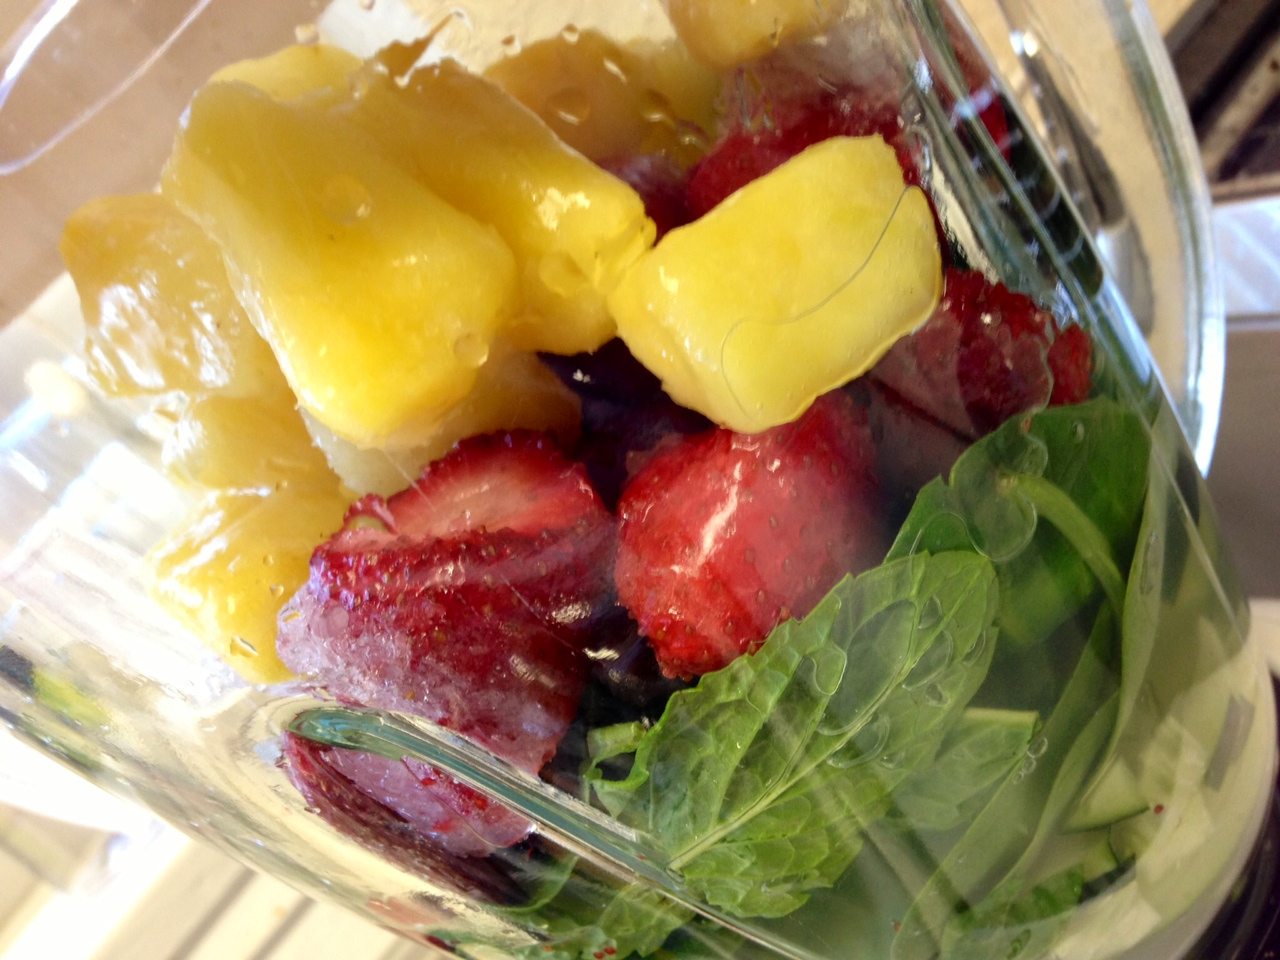 Pre-Blended Green Smoothie